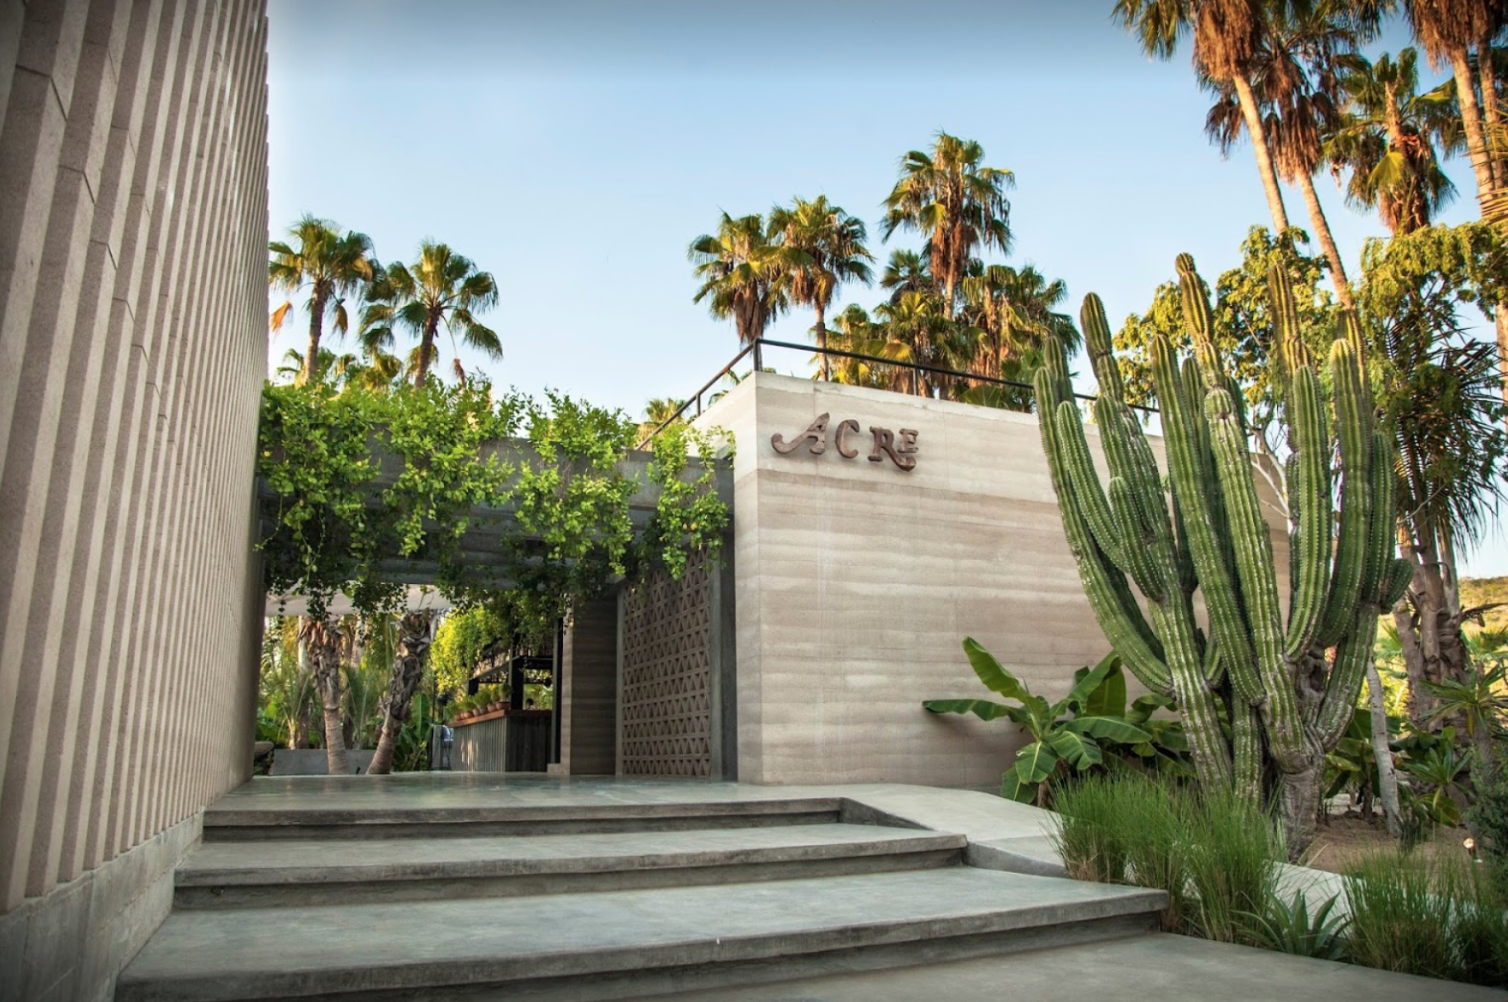 Acre   | Calle Sin Nombre, Animas Bajas Tel: +52 624 171 8226  A modern, design-centric take on farm-to-table restaurant (and just around the corner from the OG Flora Farms). A bit off the beaten path so car service is highly recommended; approximately 25-30 minutes from Palmilla but well worth it!